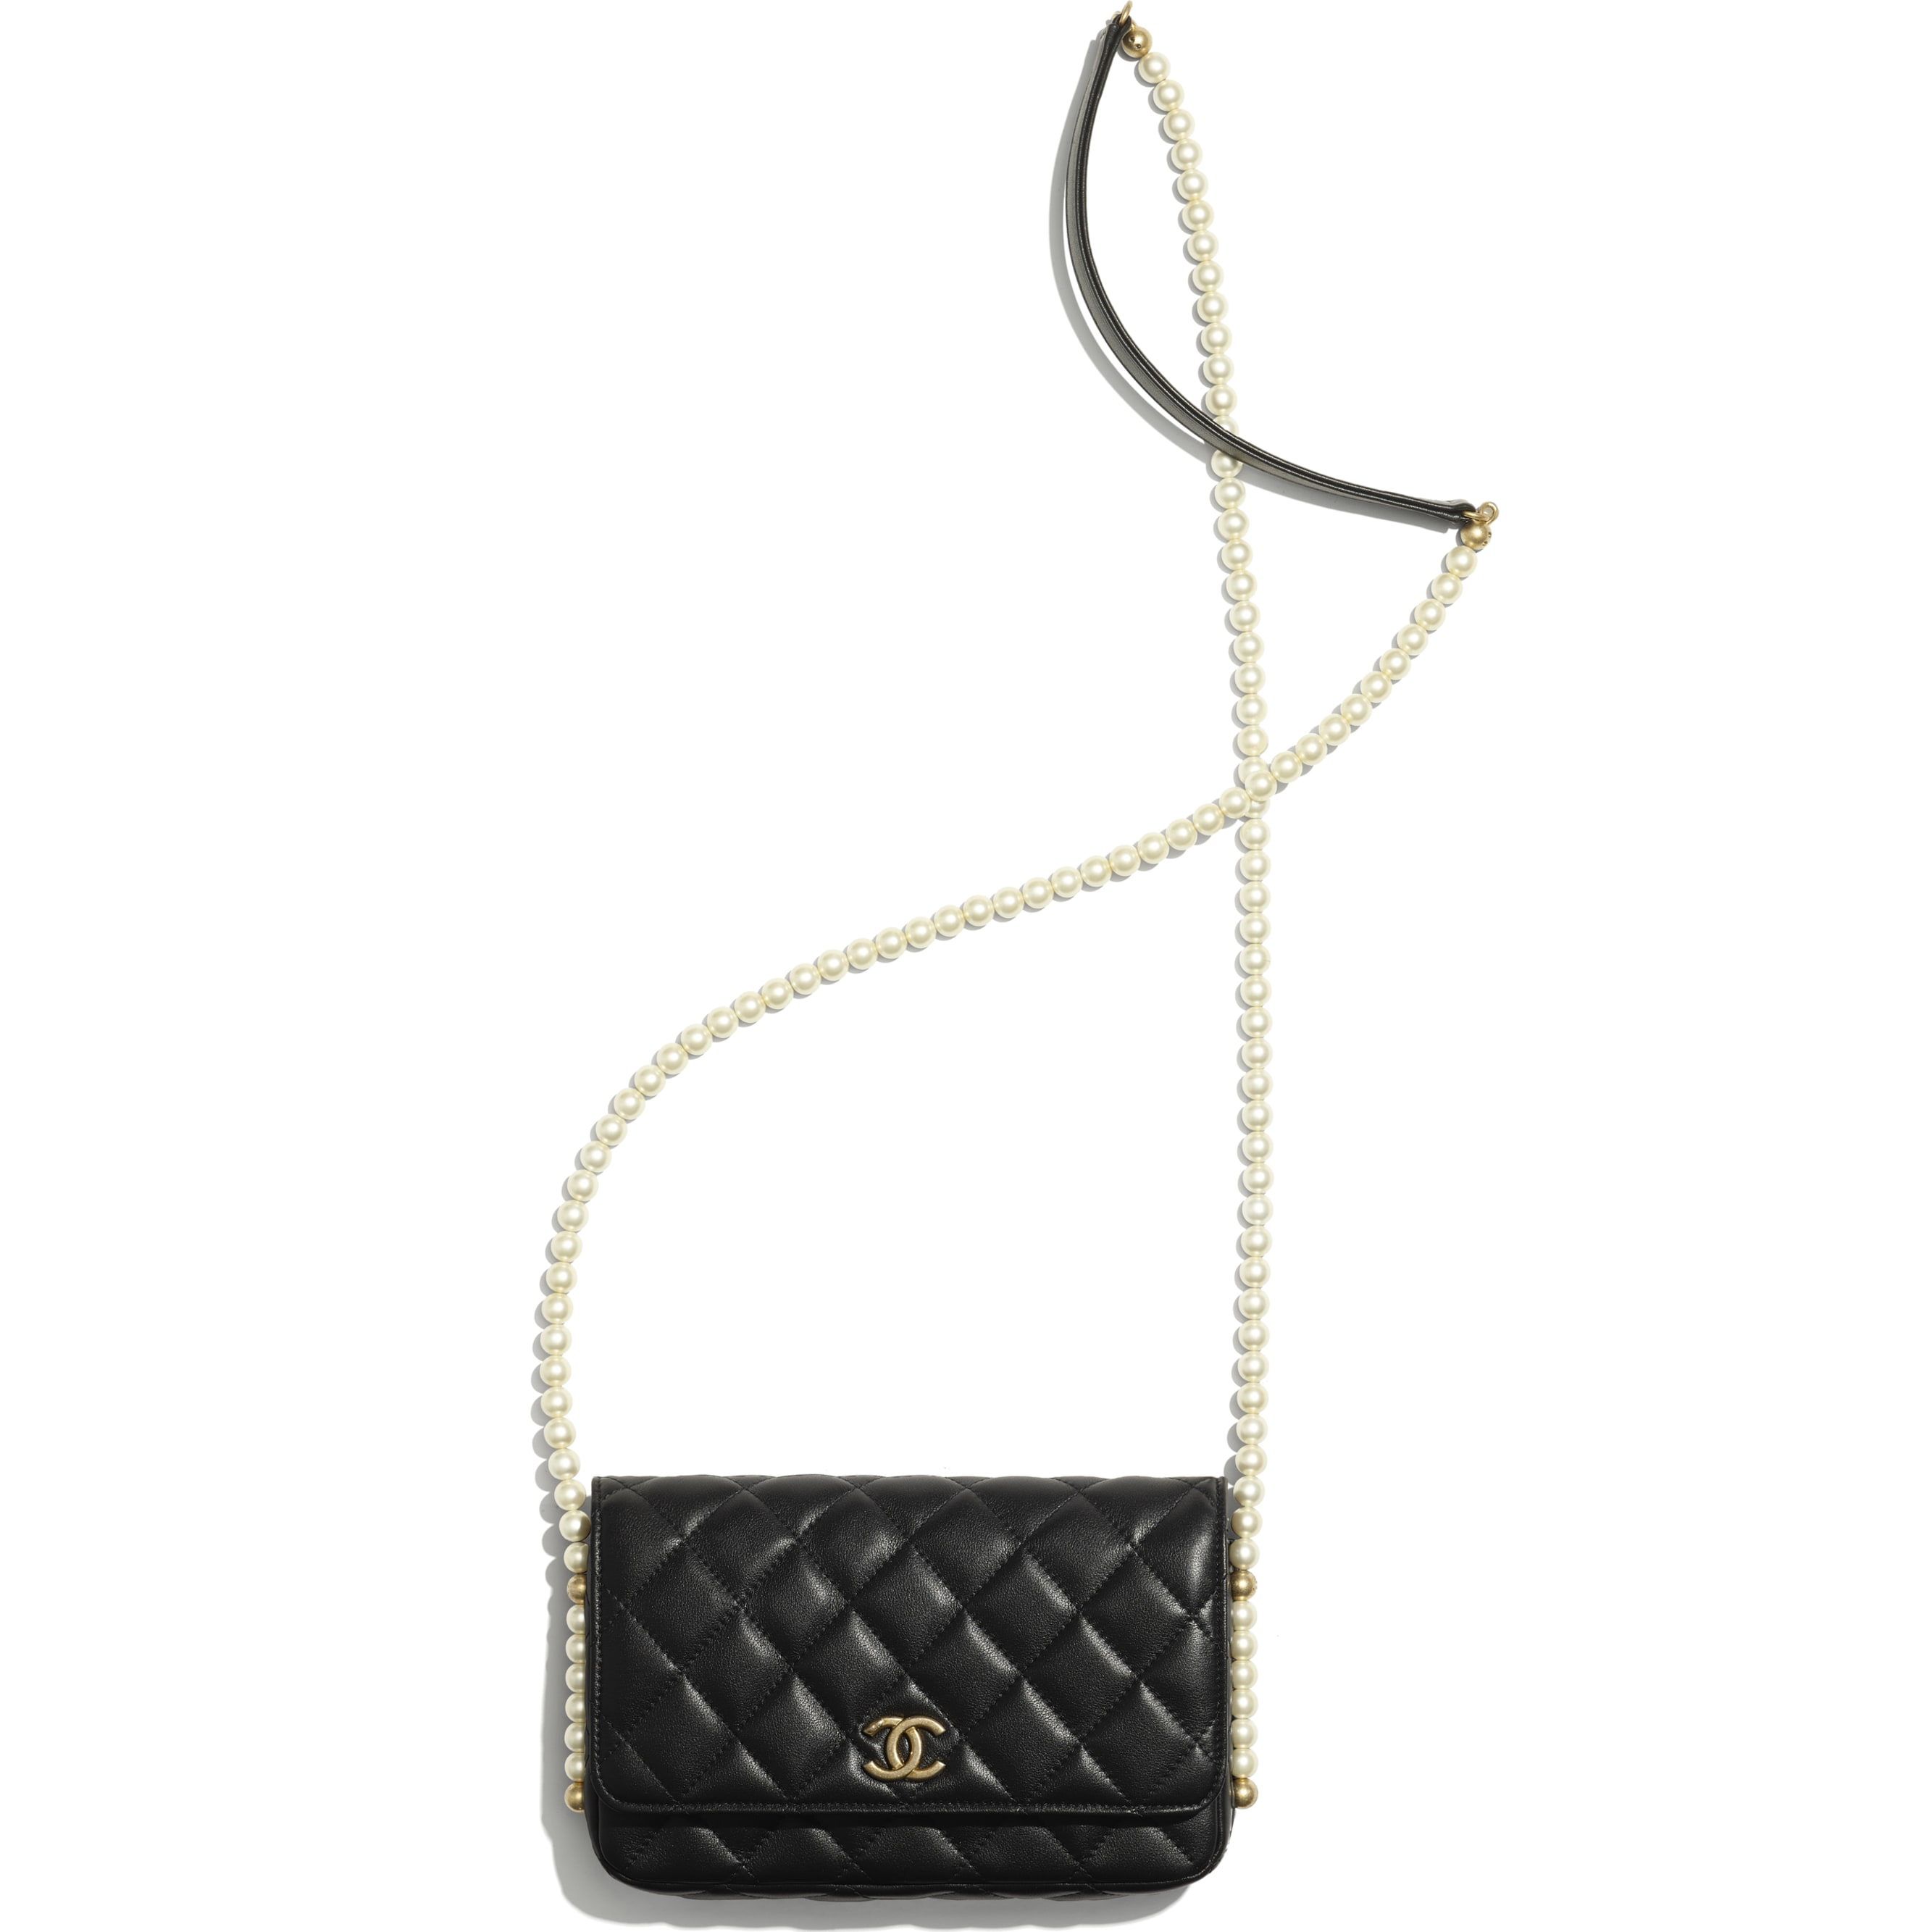 Wallet On Chain - Black - Calfskin, Imitation Pearls & Gold-Tone Metal - CHANEL - Other view - see standard sized version